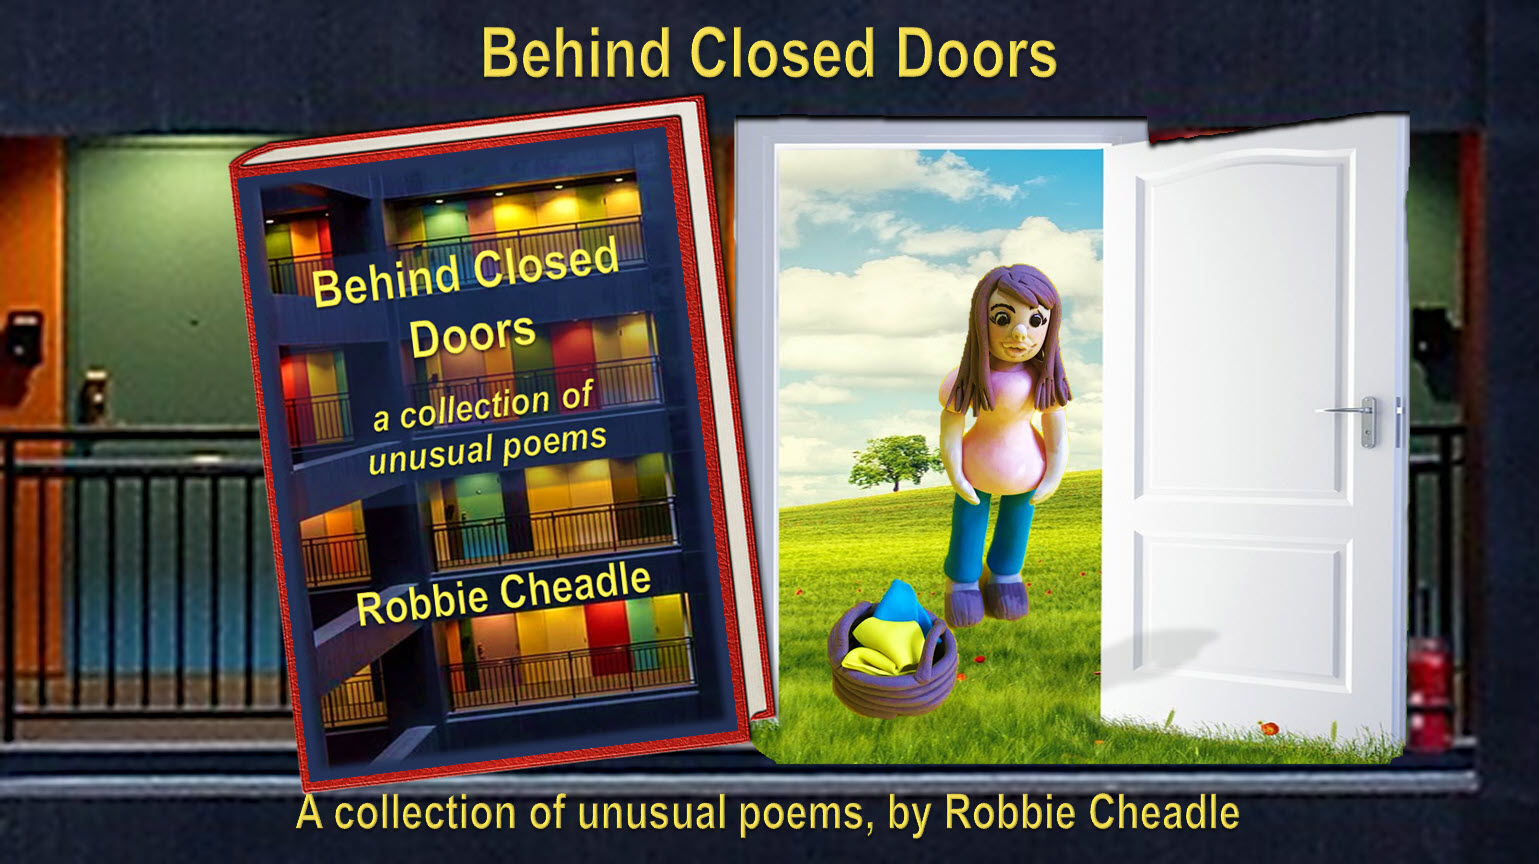 Behind Closed Doors by Robbie Cheadle. Promo image & book cover by Teagan